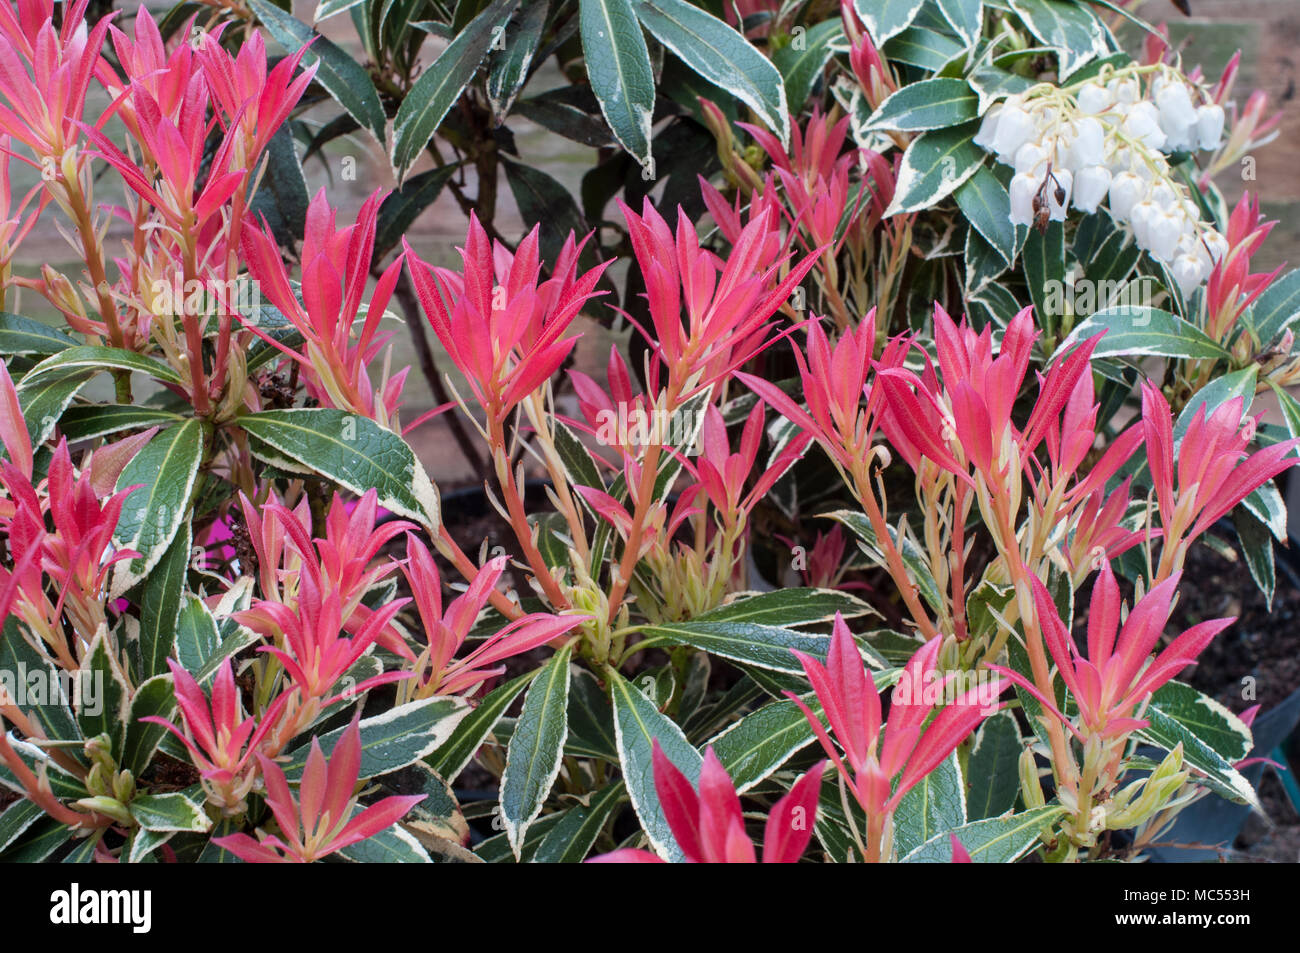 Pieris Flaming Silver With Red Leaves And Urn Shaped White Flowers